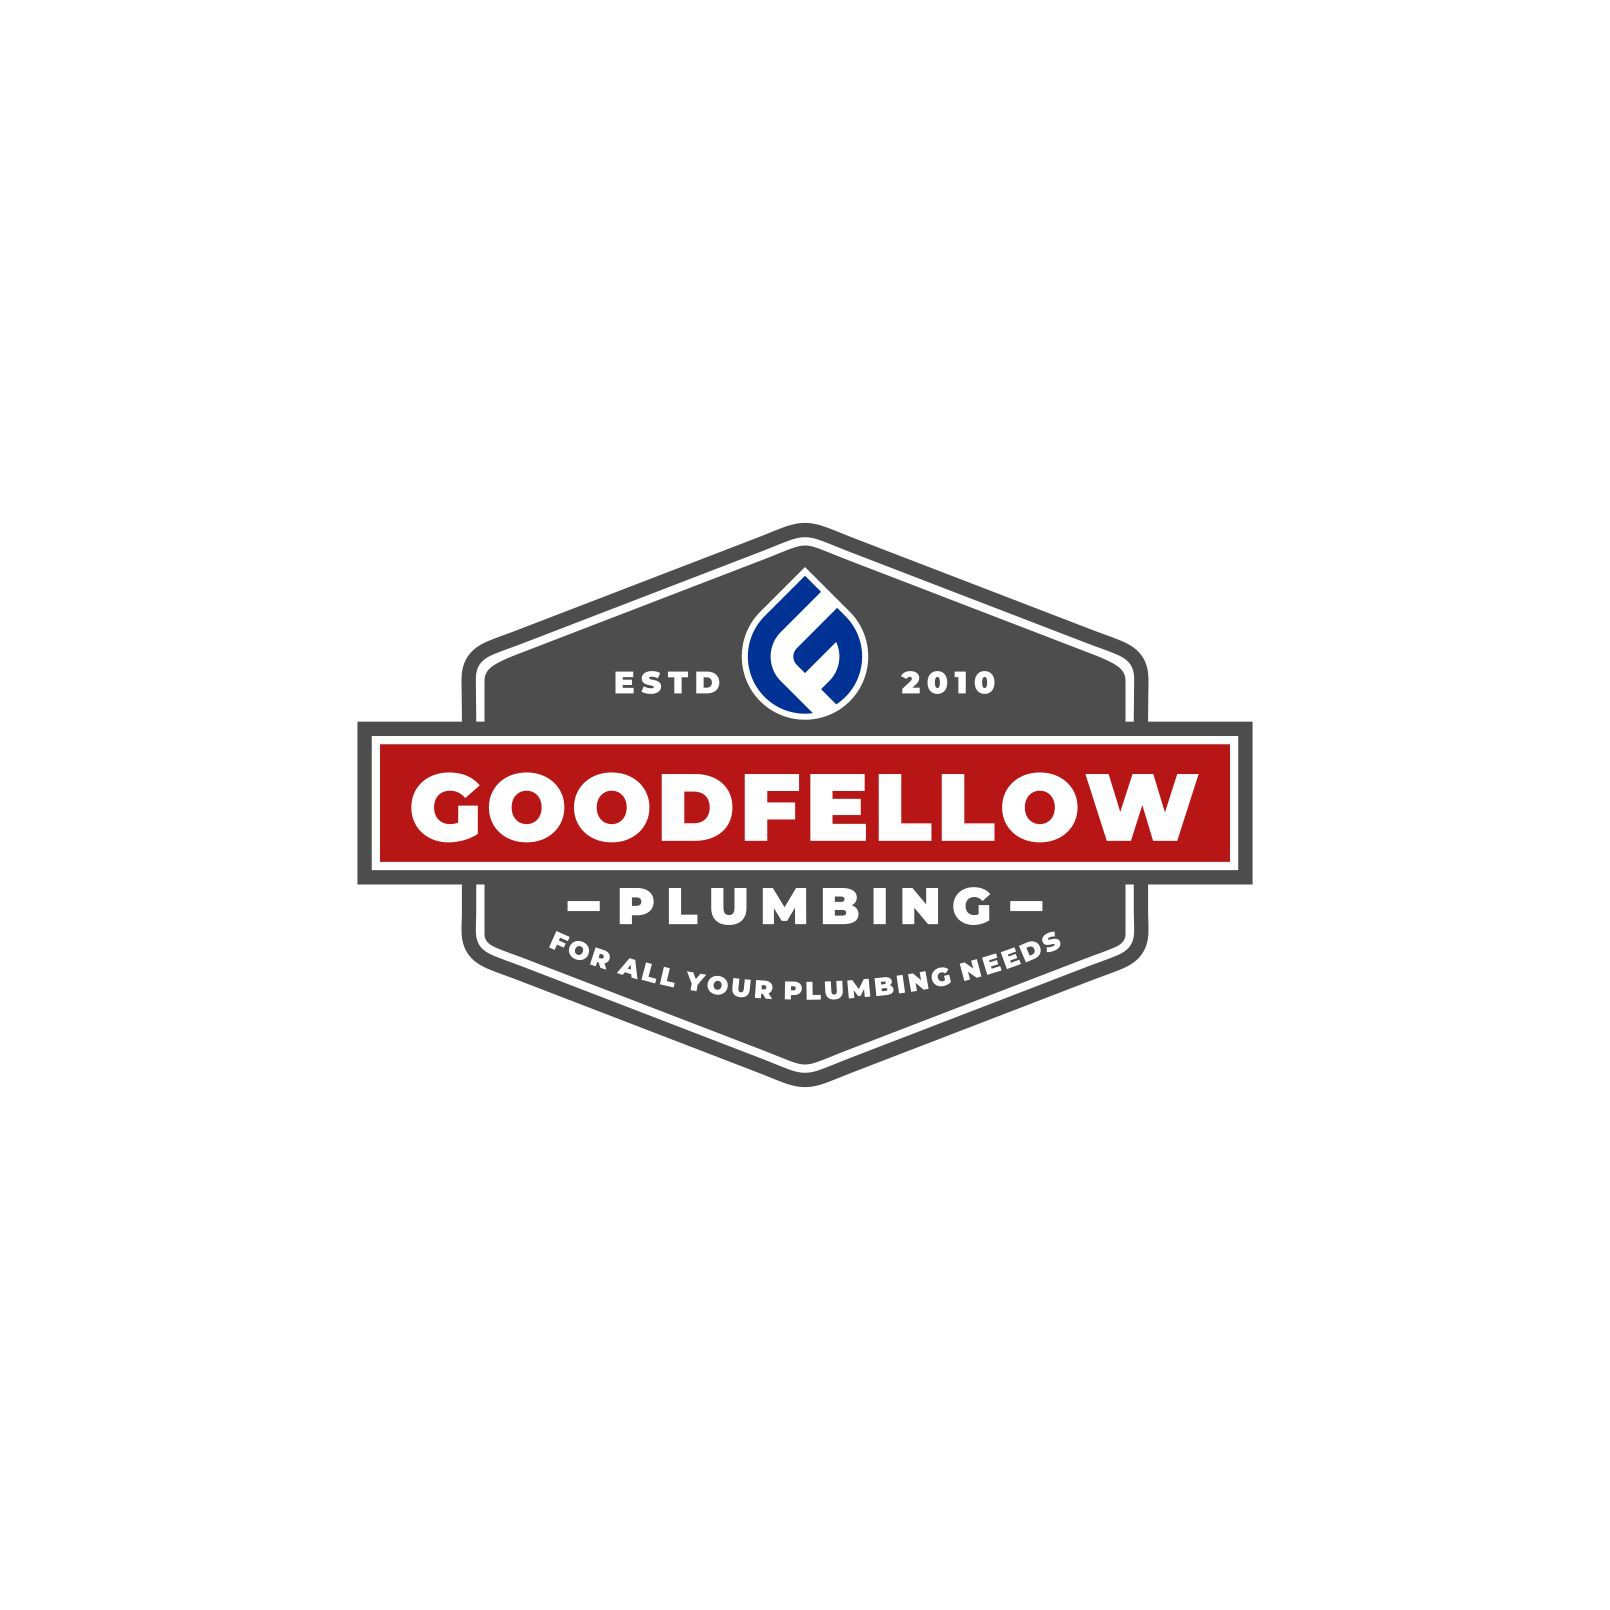 Contest for new logo for Goodfellow Plumbing